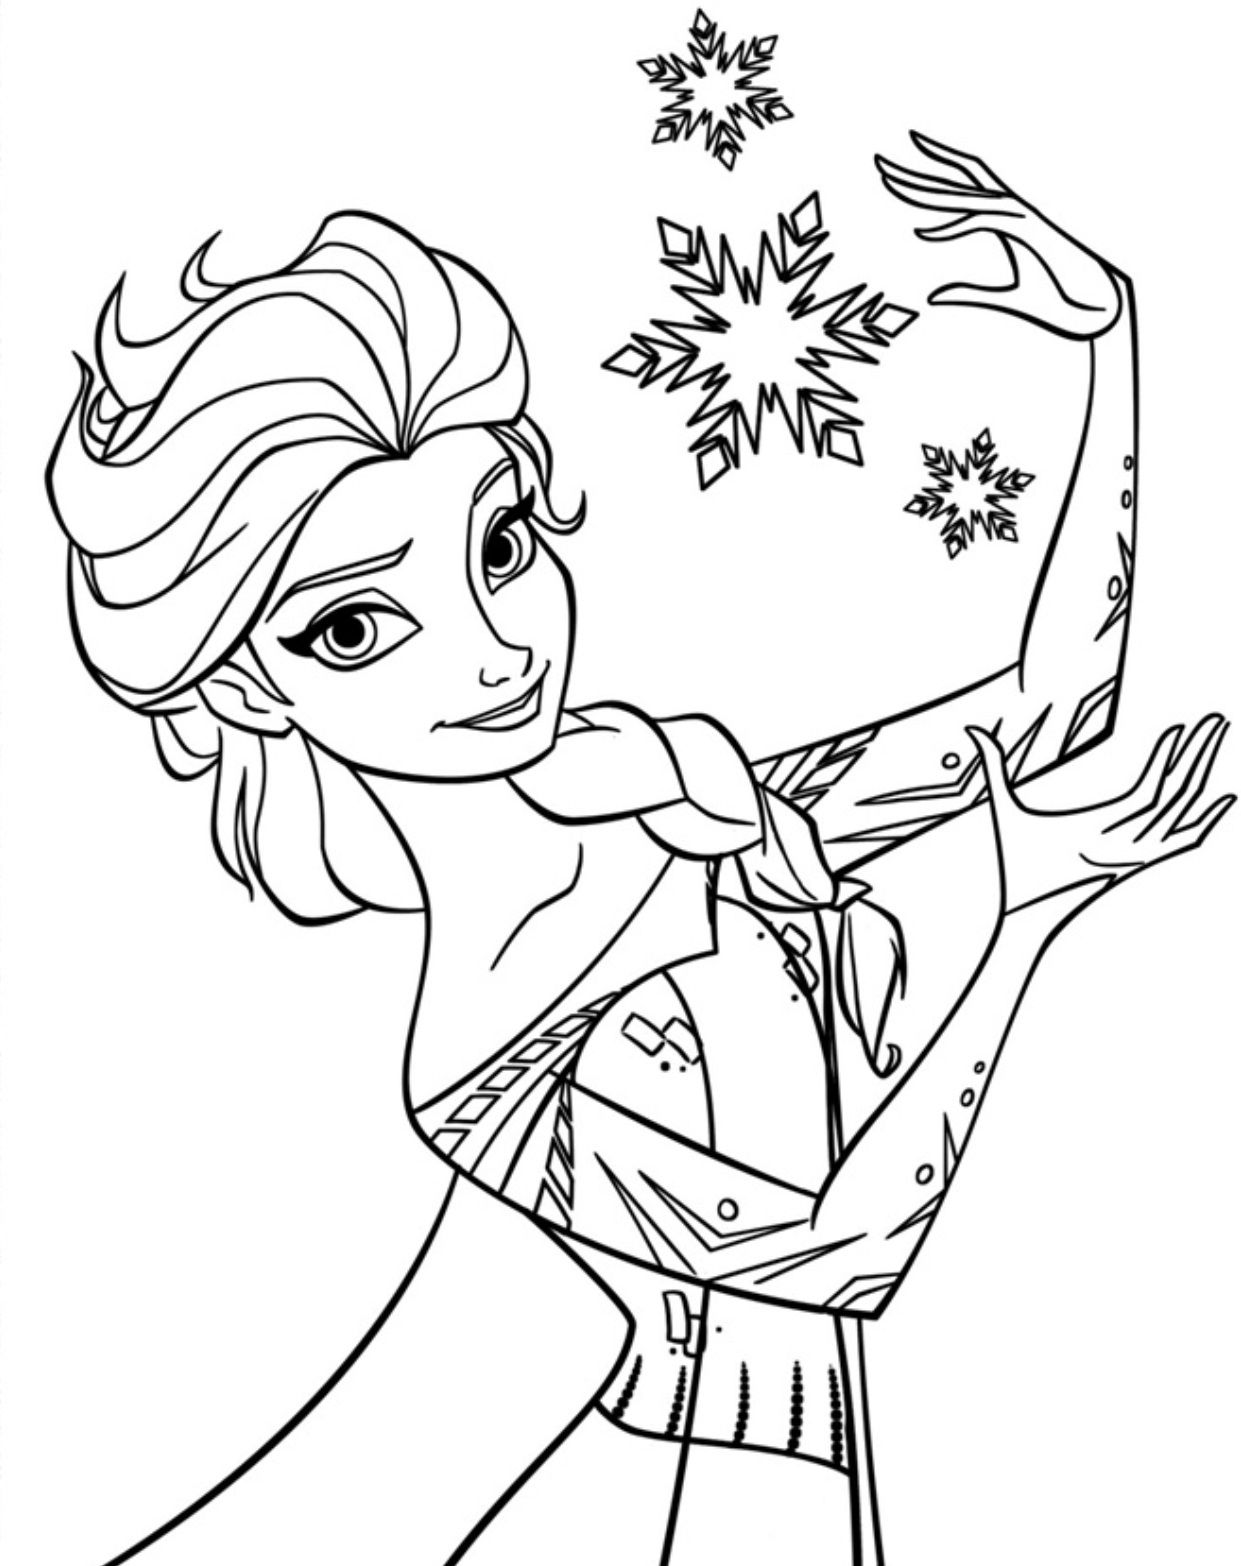 Free coloring pages printable frozen - Interesting Free Printable Elsa Coloring Pages Pictures Elsa Coloring Pages Print Frozen Coloring Pages Elsa Coloring Pages Free Queen Elsa Coloring Pages